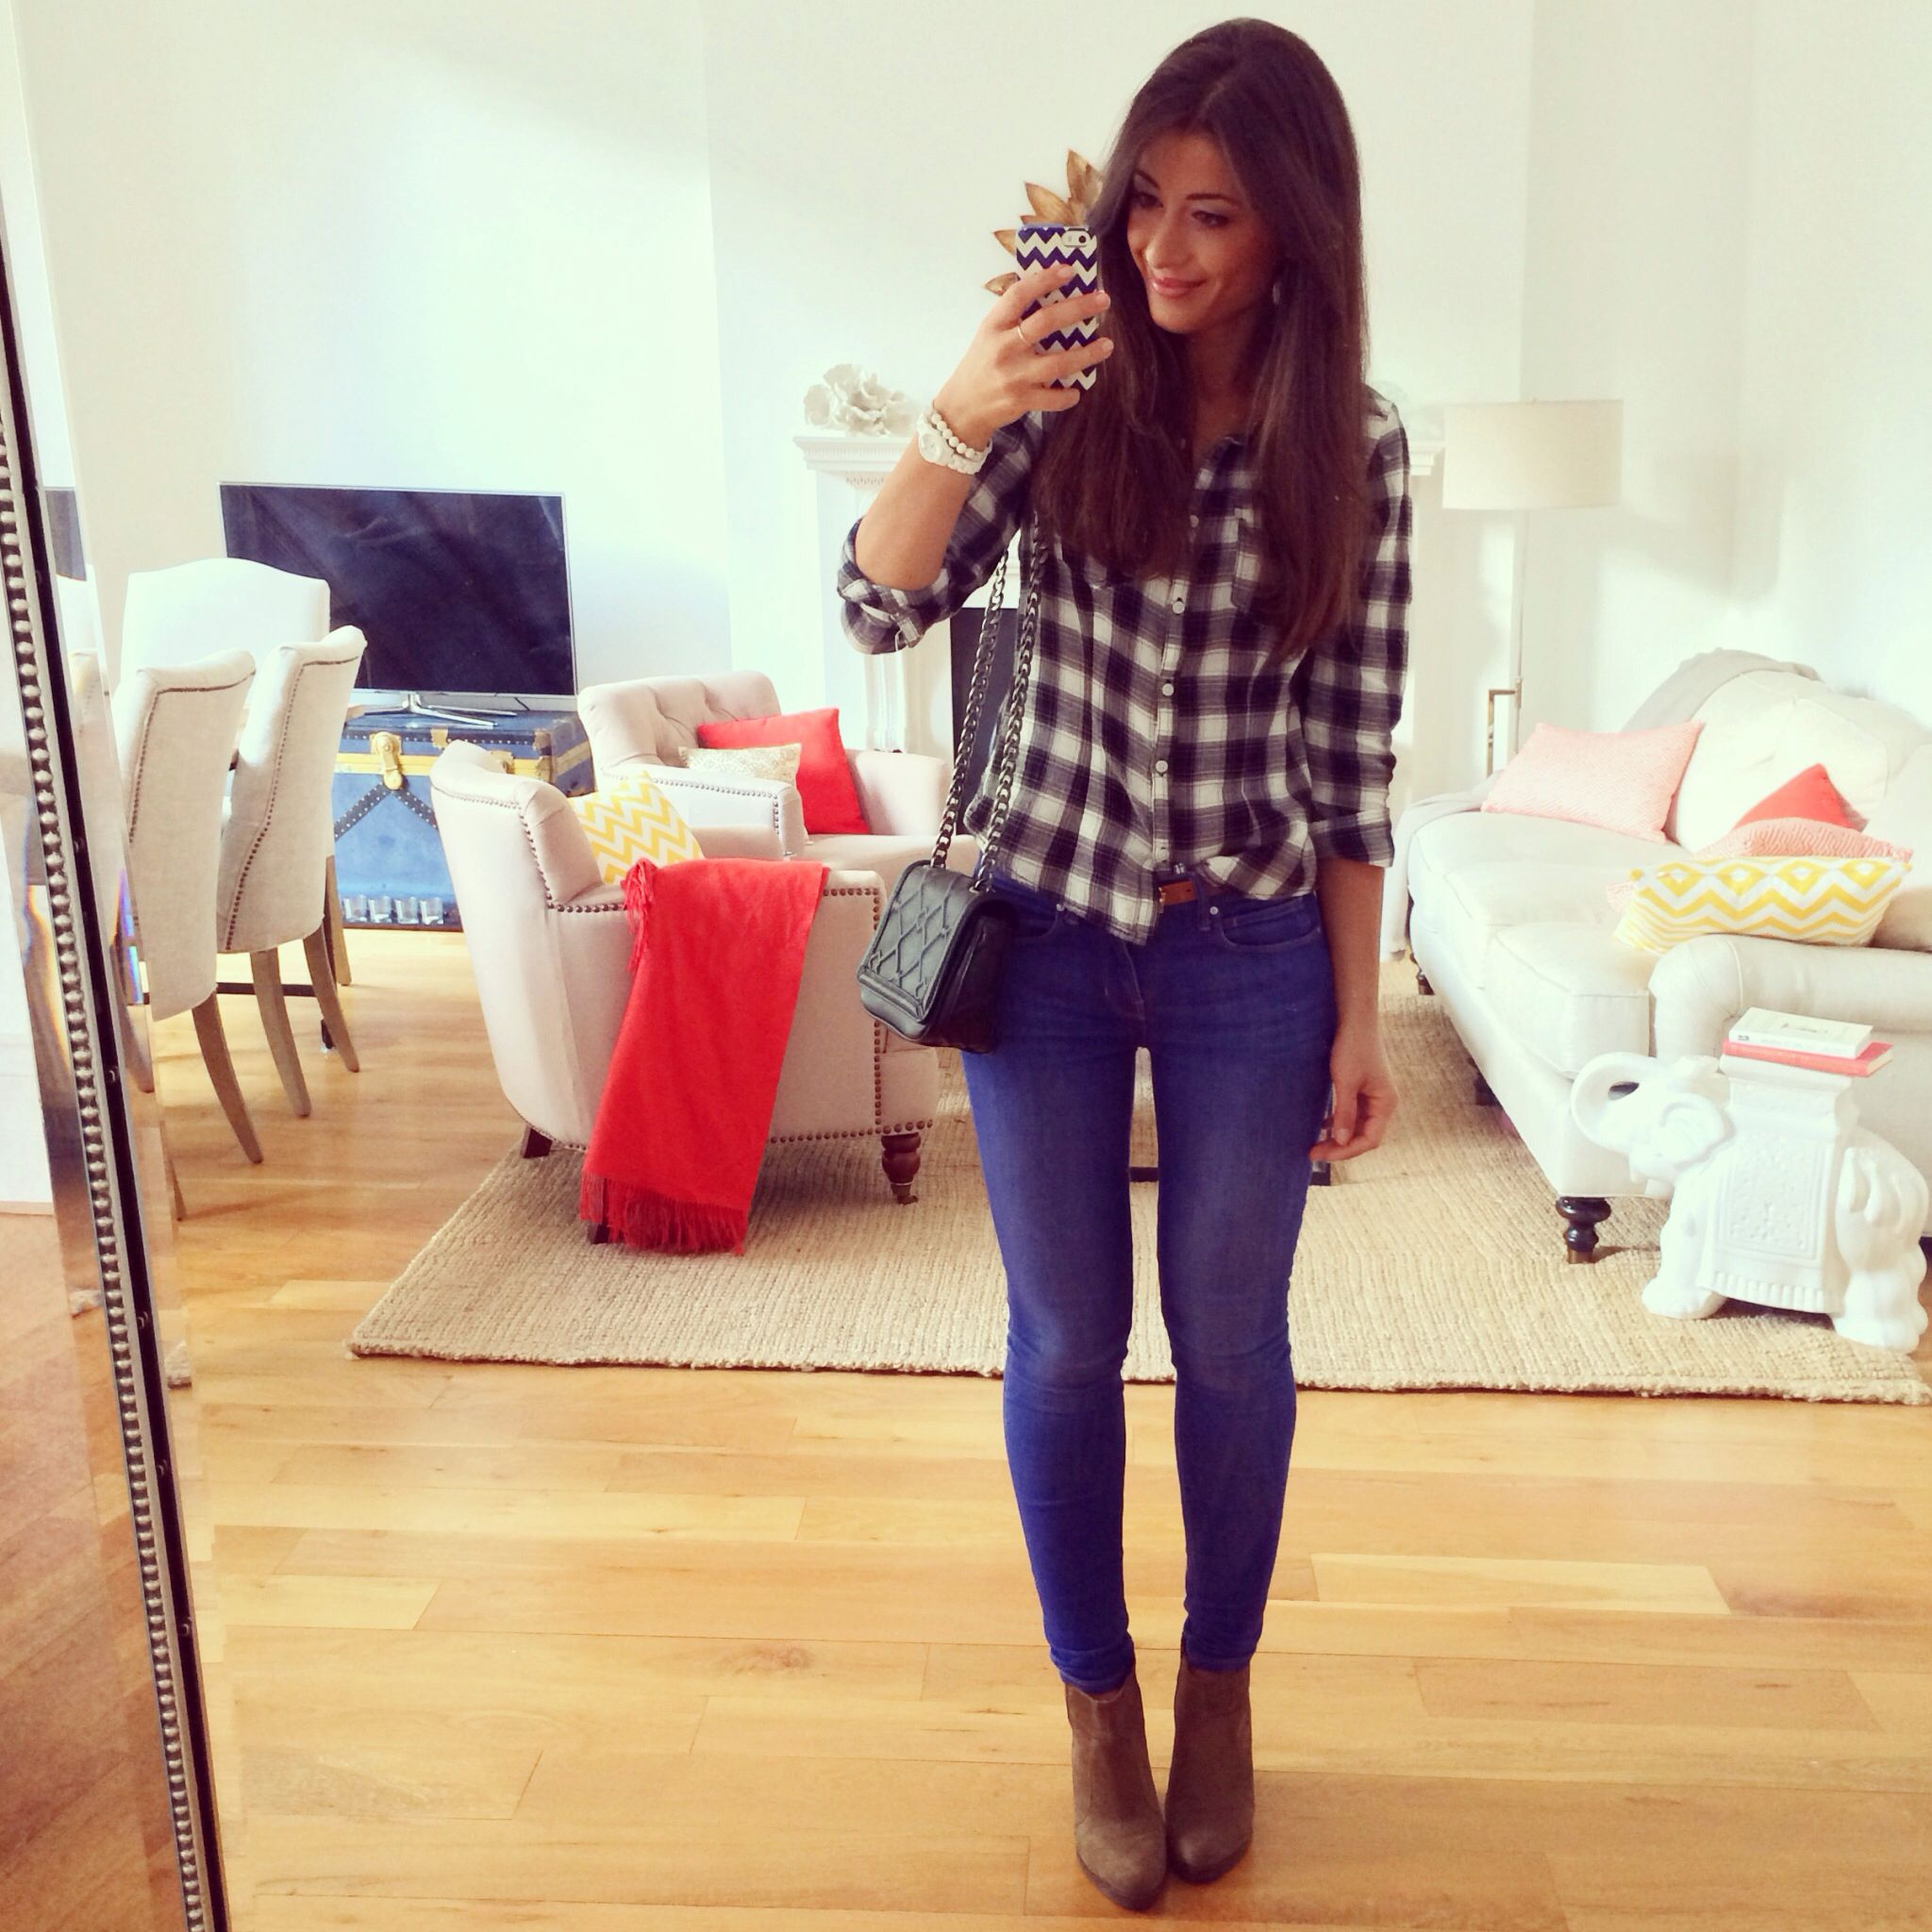 Plaid shirt, skinny jeans, winter outfit